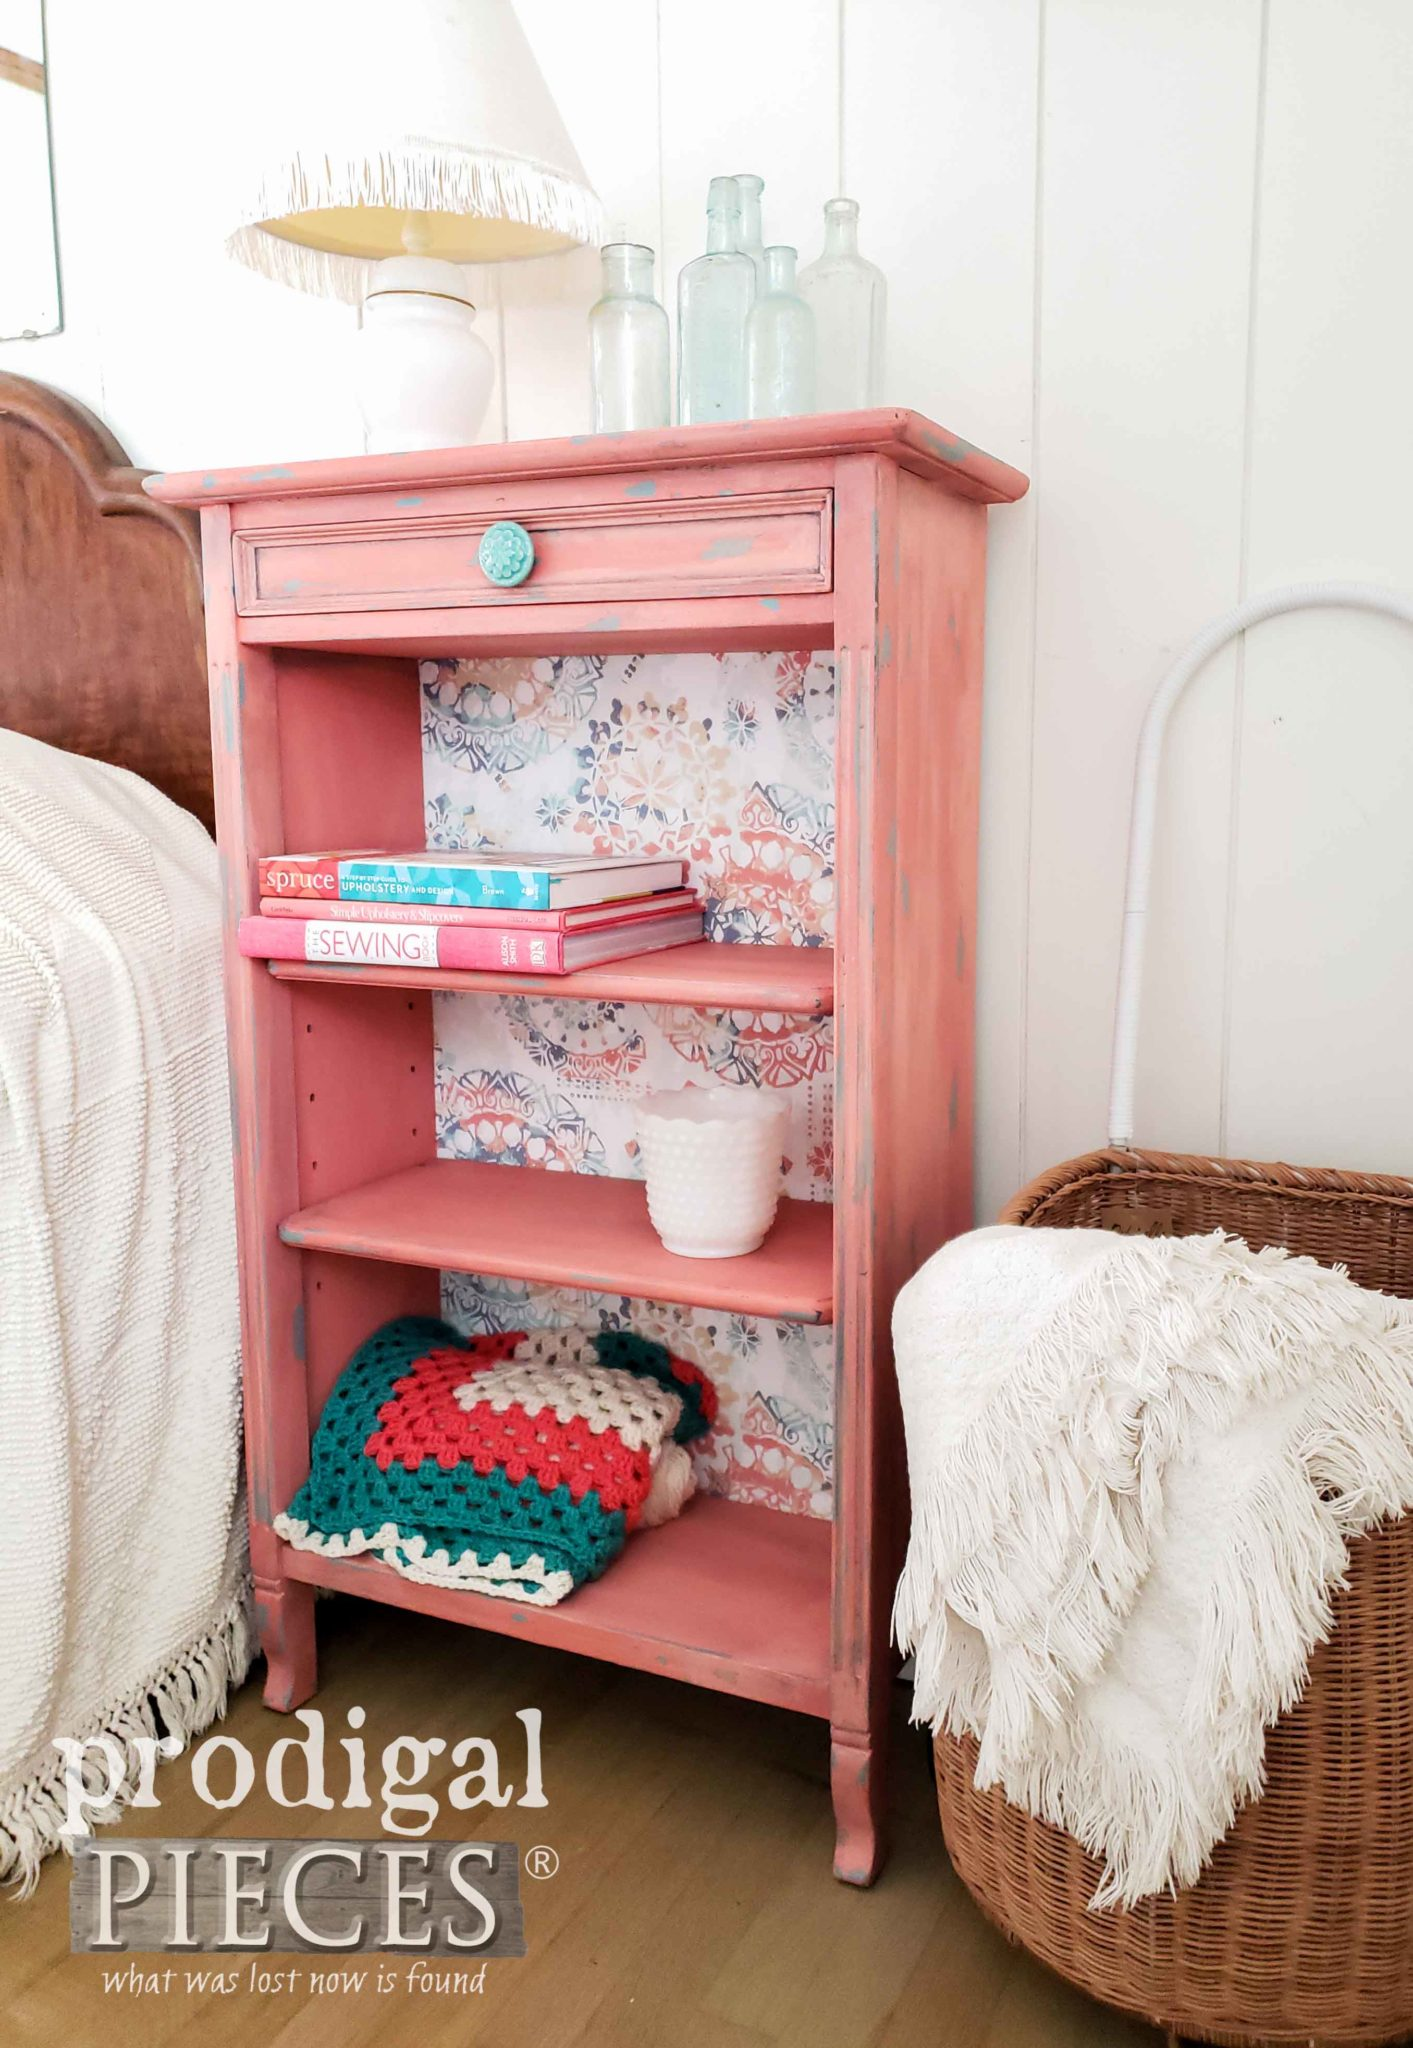 This distressed pink bedside table is quirky and fun.